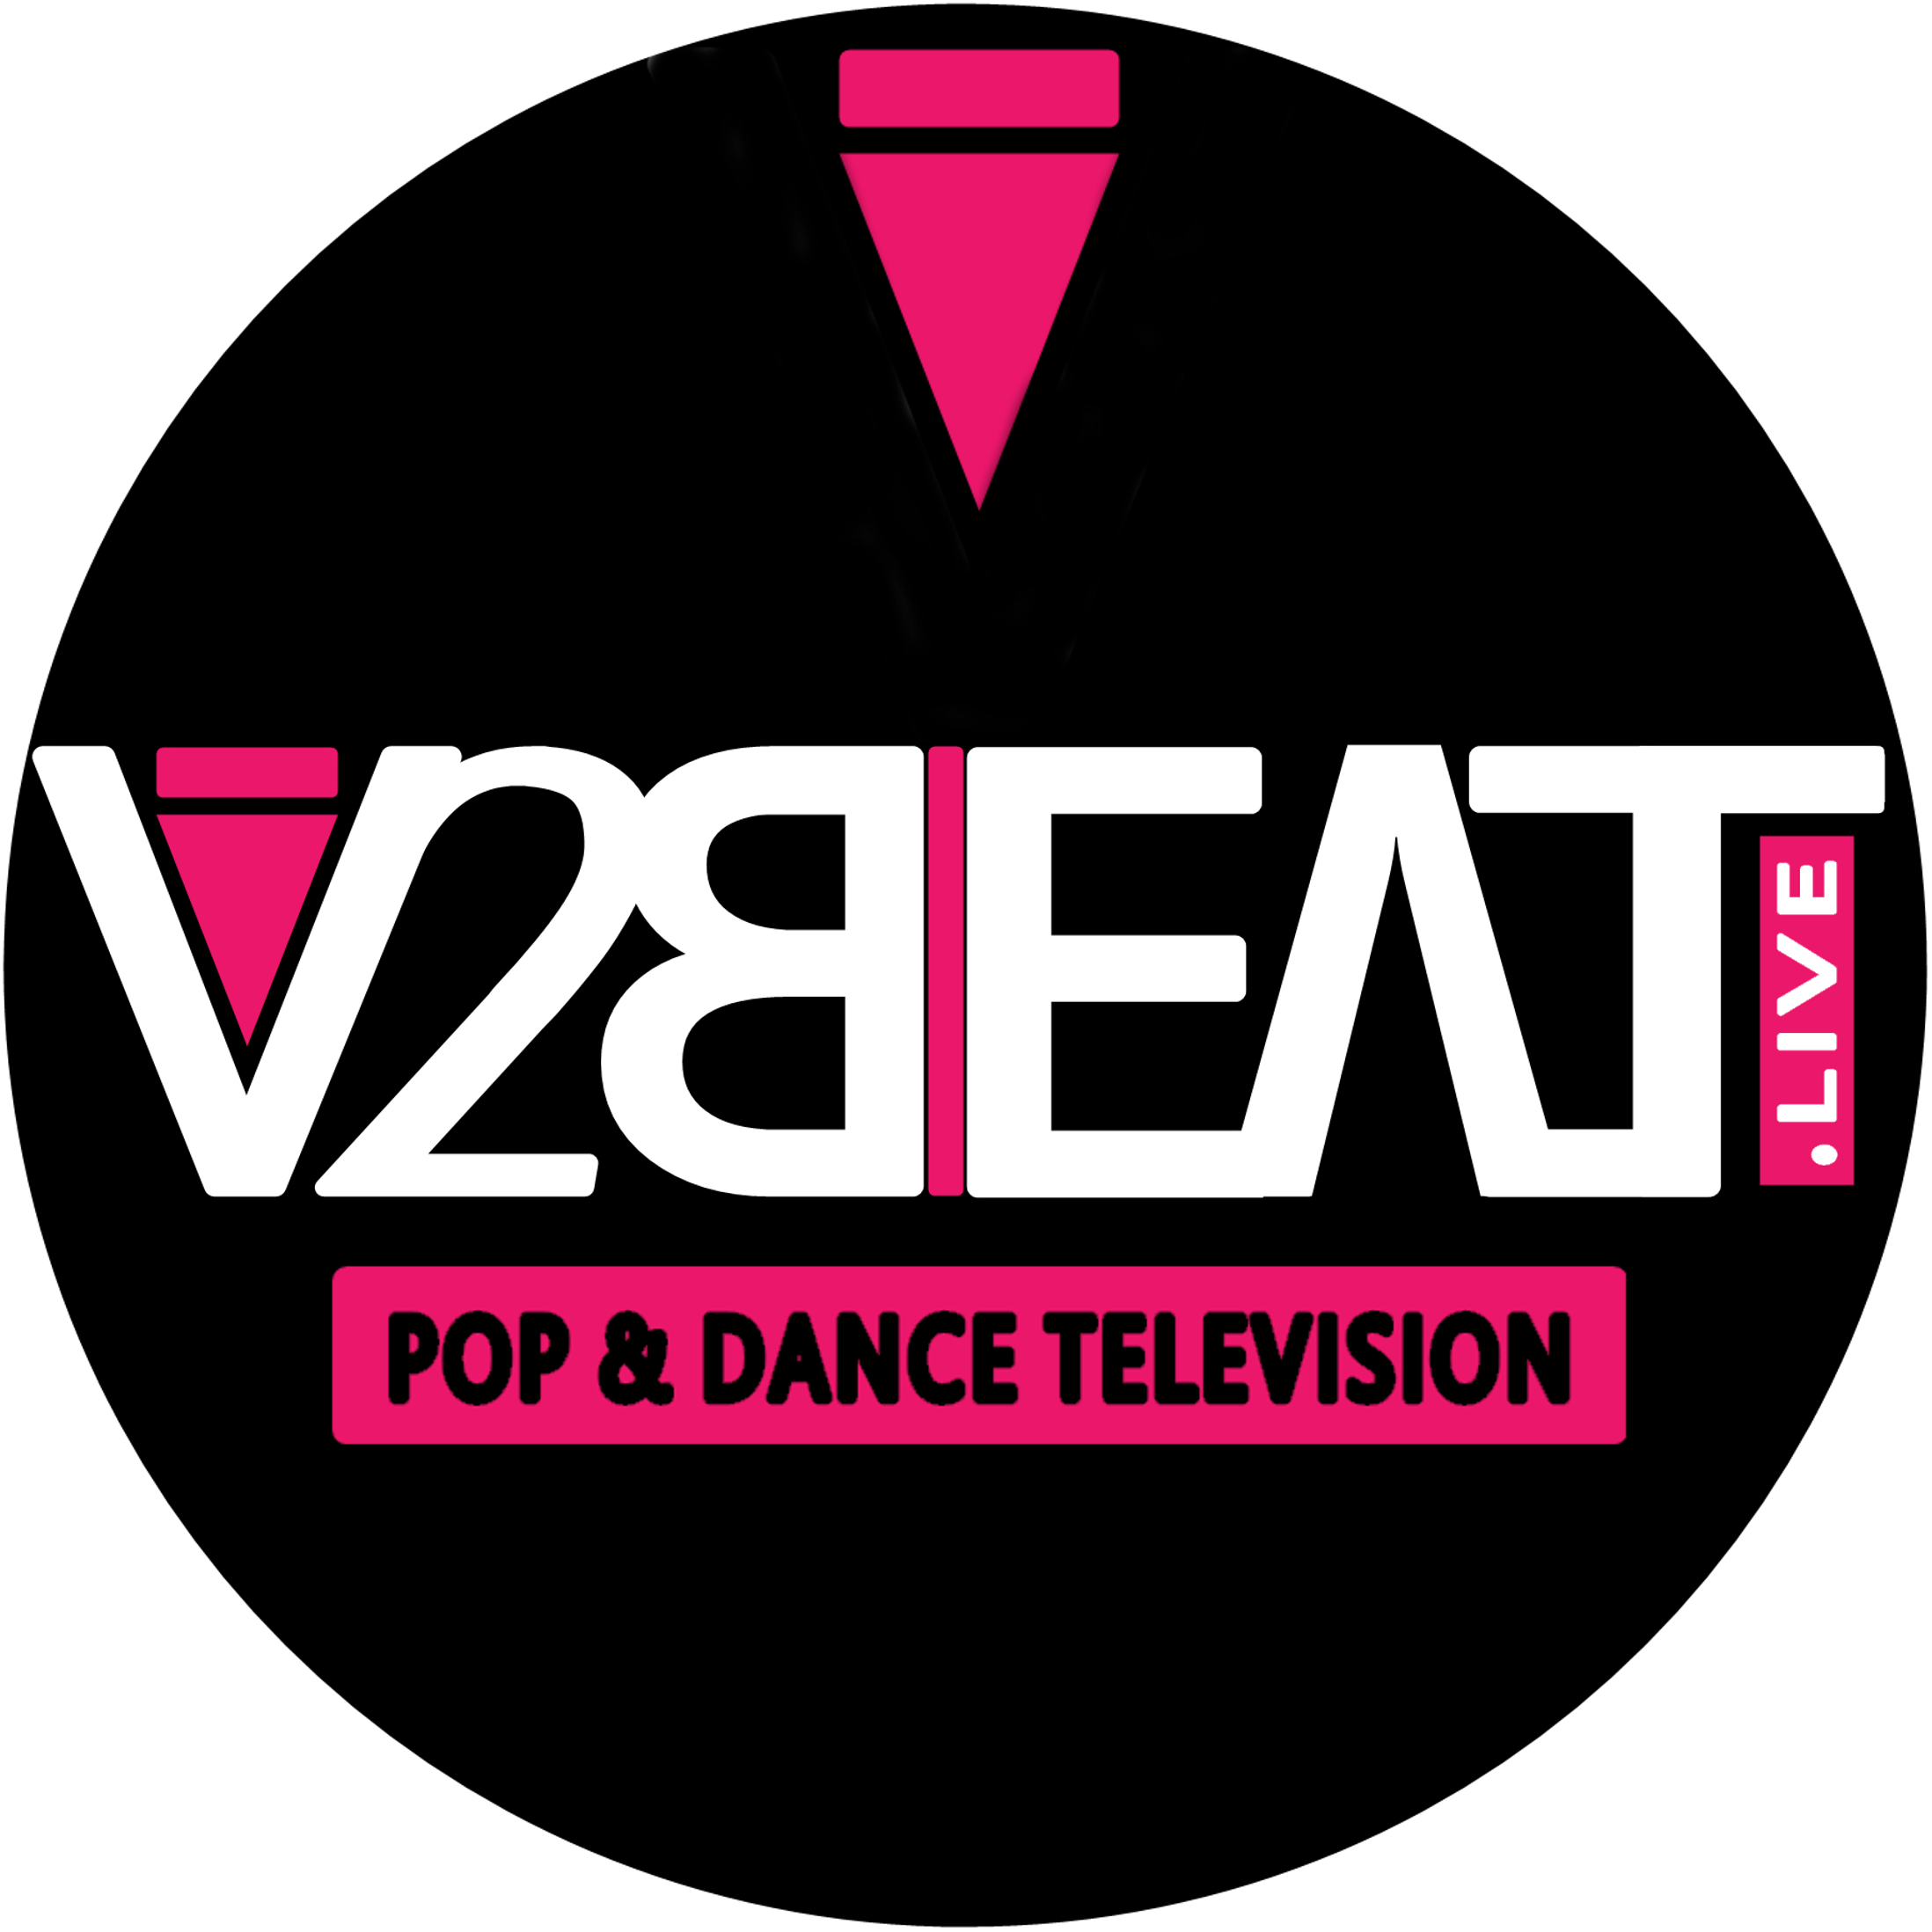 vibee Radio Tv Logo